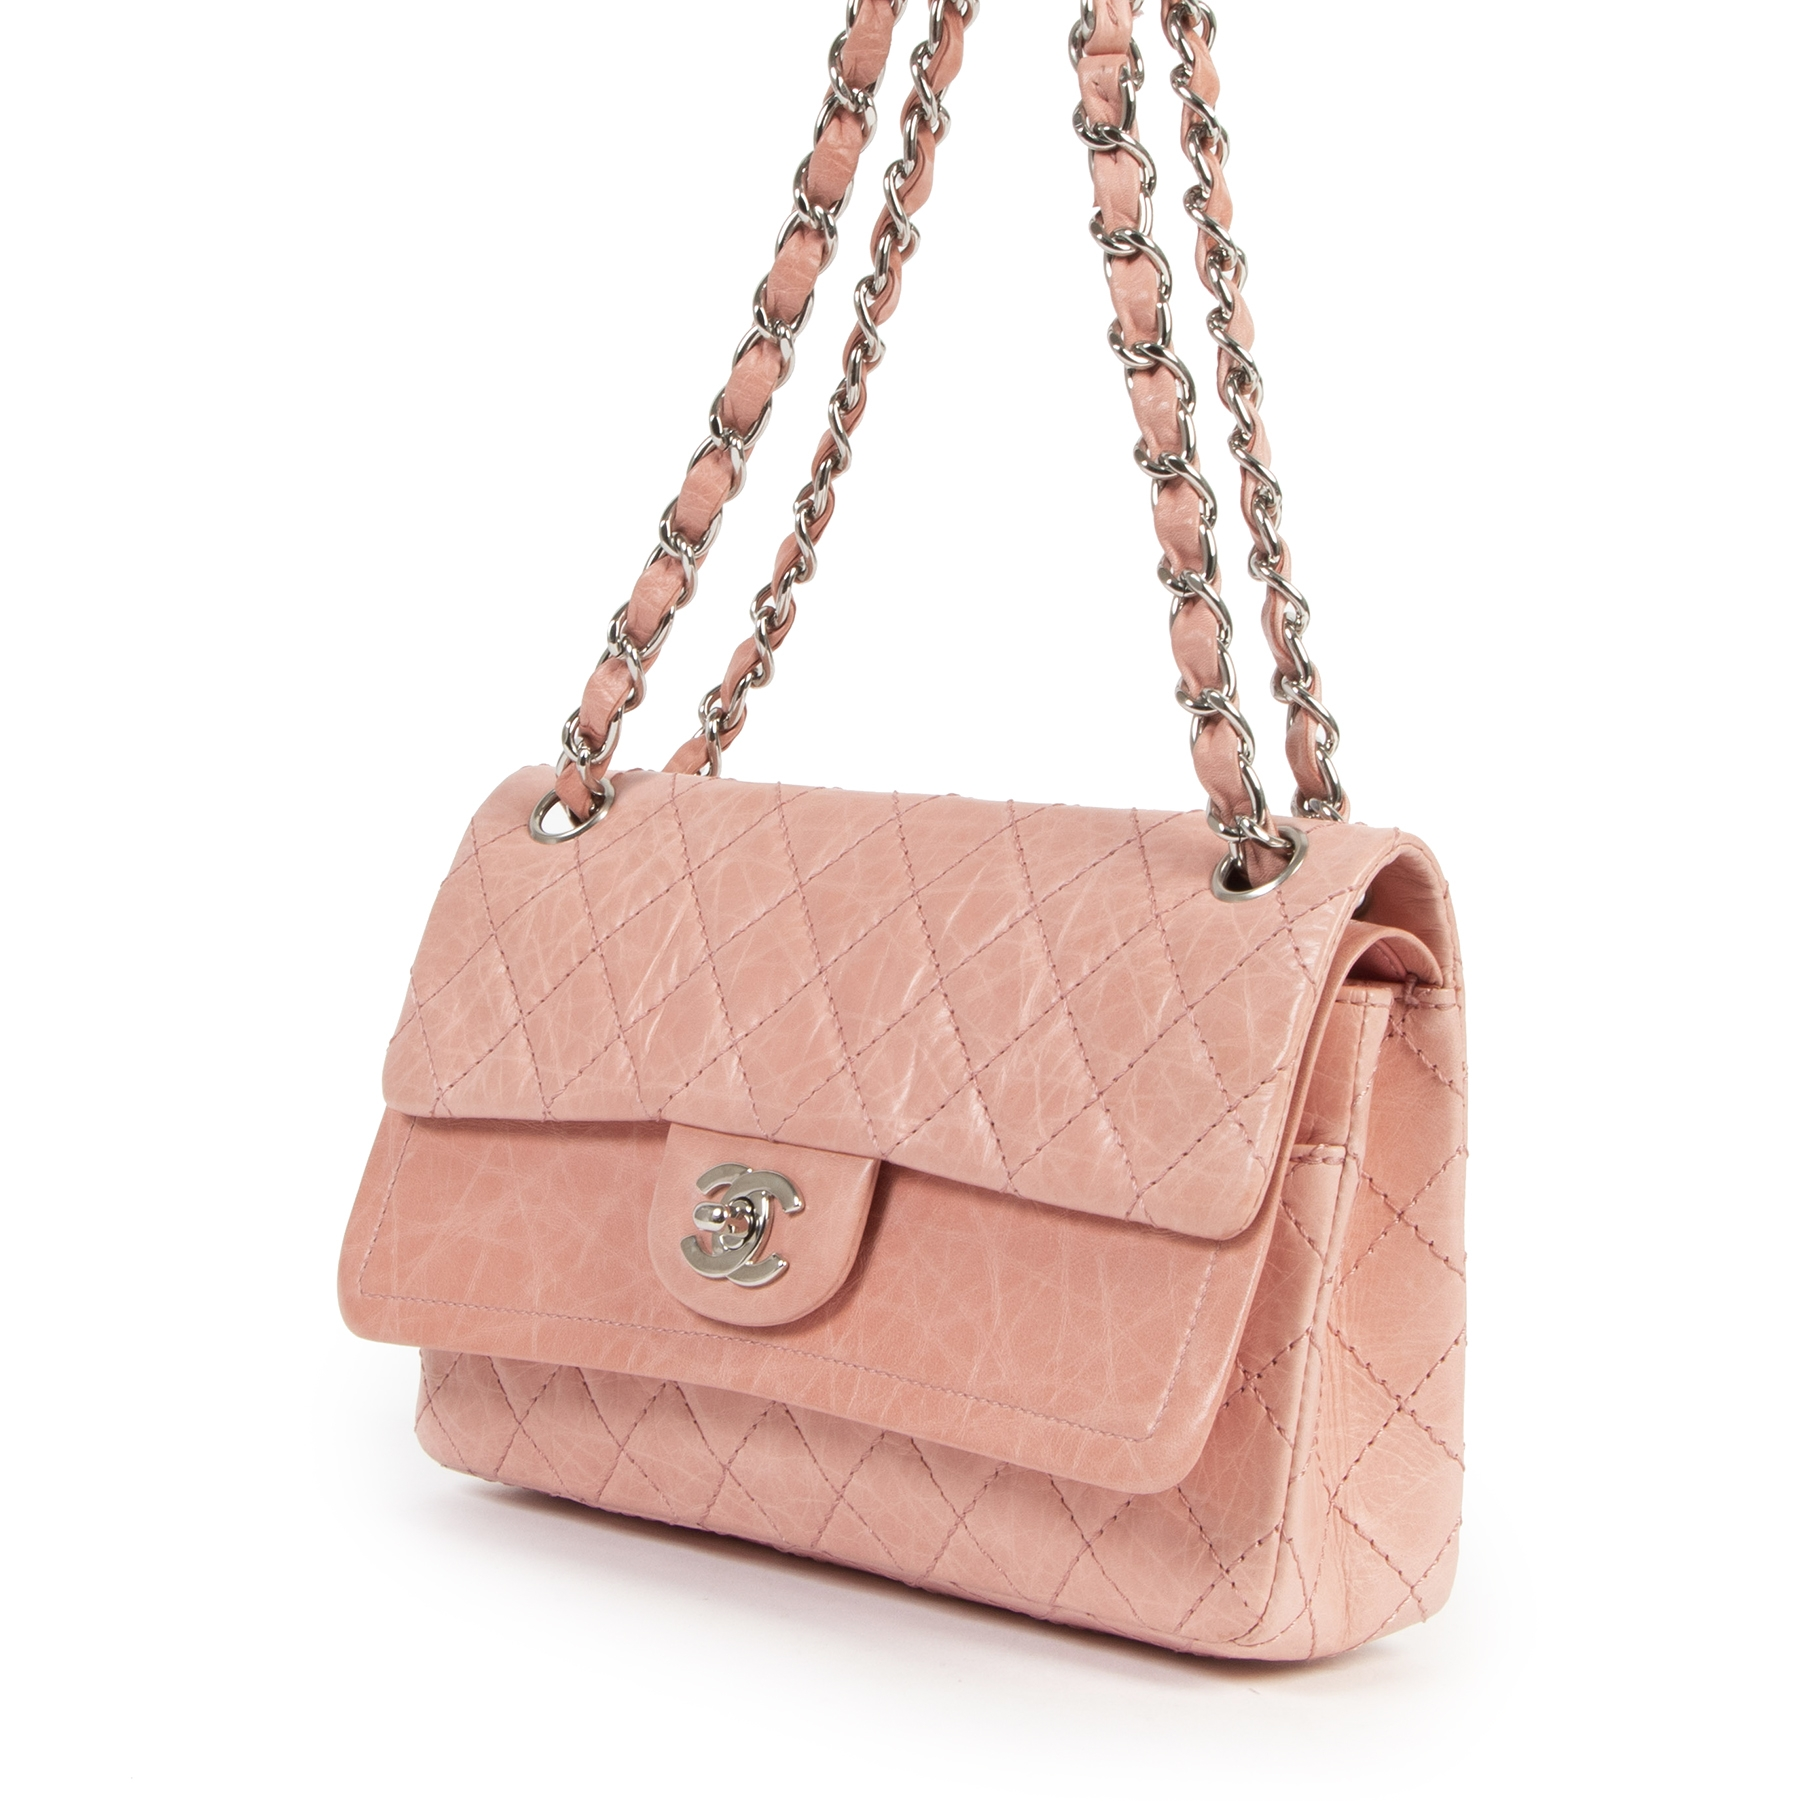 acheter en ligne seconde main Chanel Pink Classic Double  Flap Bag